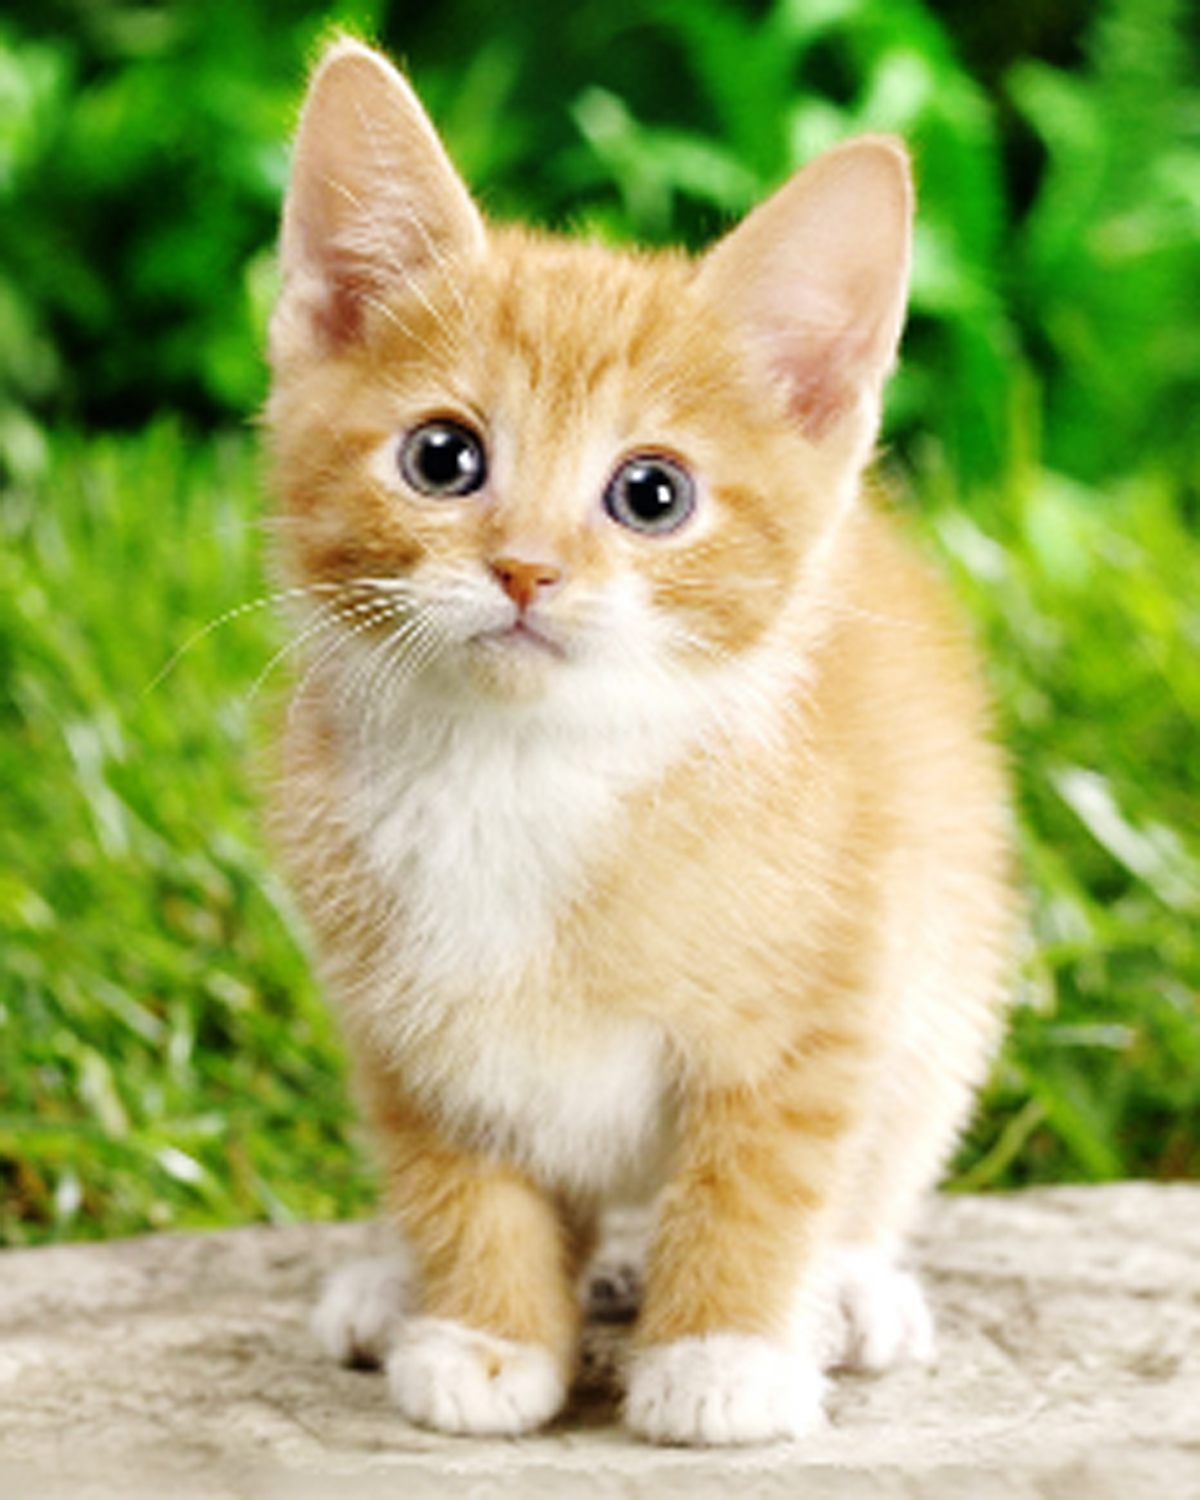 Cat lovers invited to fundraising event in Stourbridge